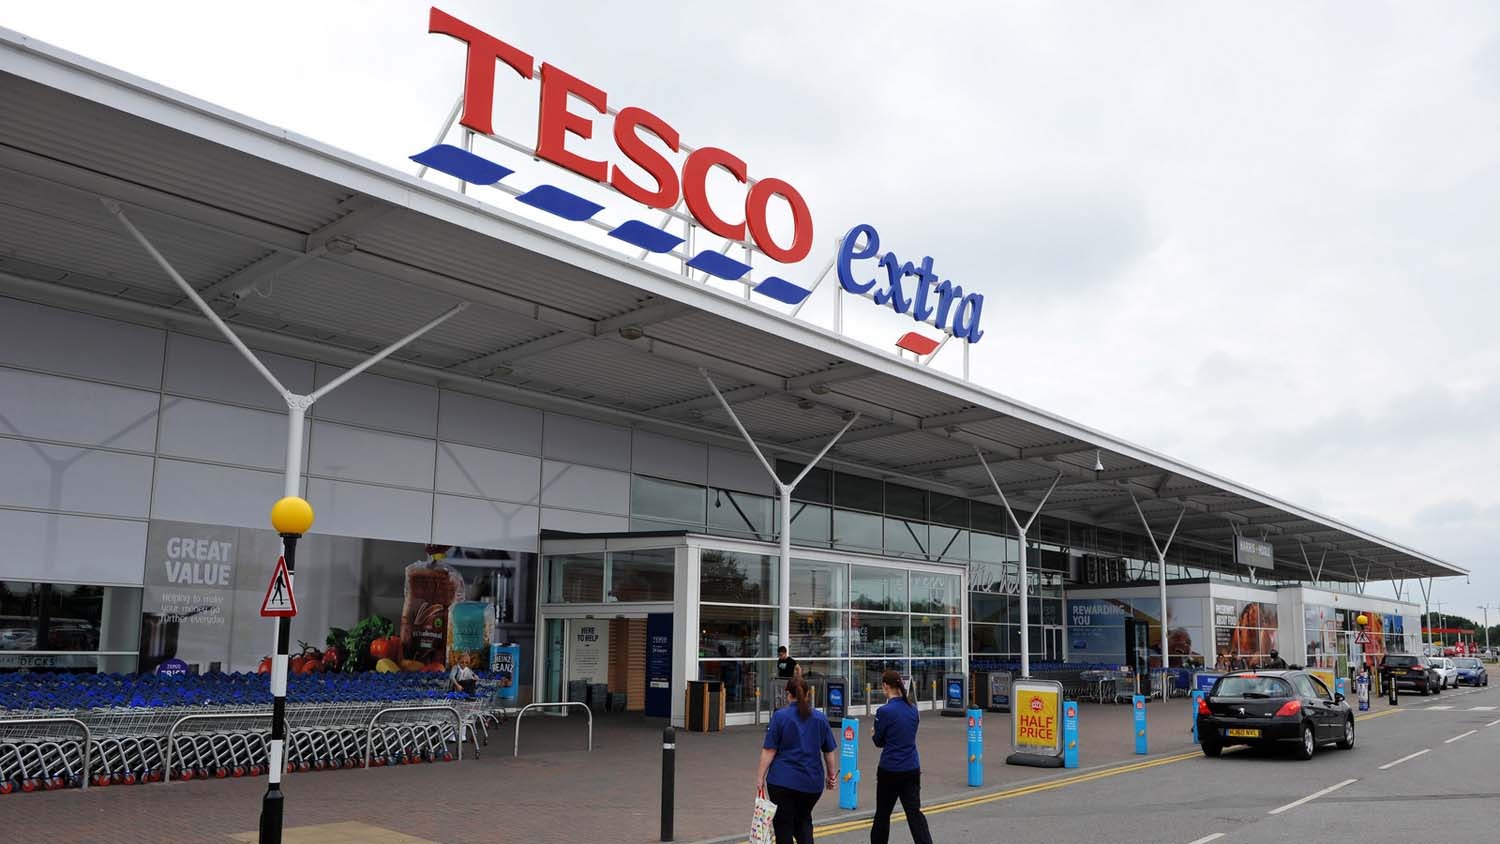 Tesco now holds 28.3 per cent of the grocery market